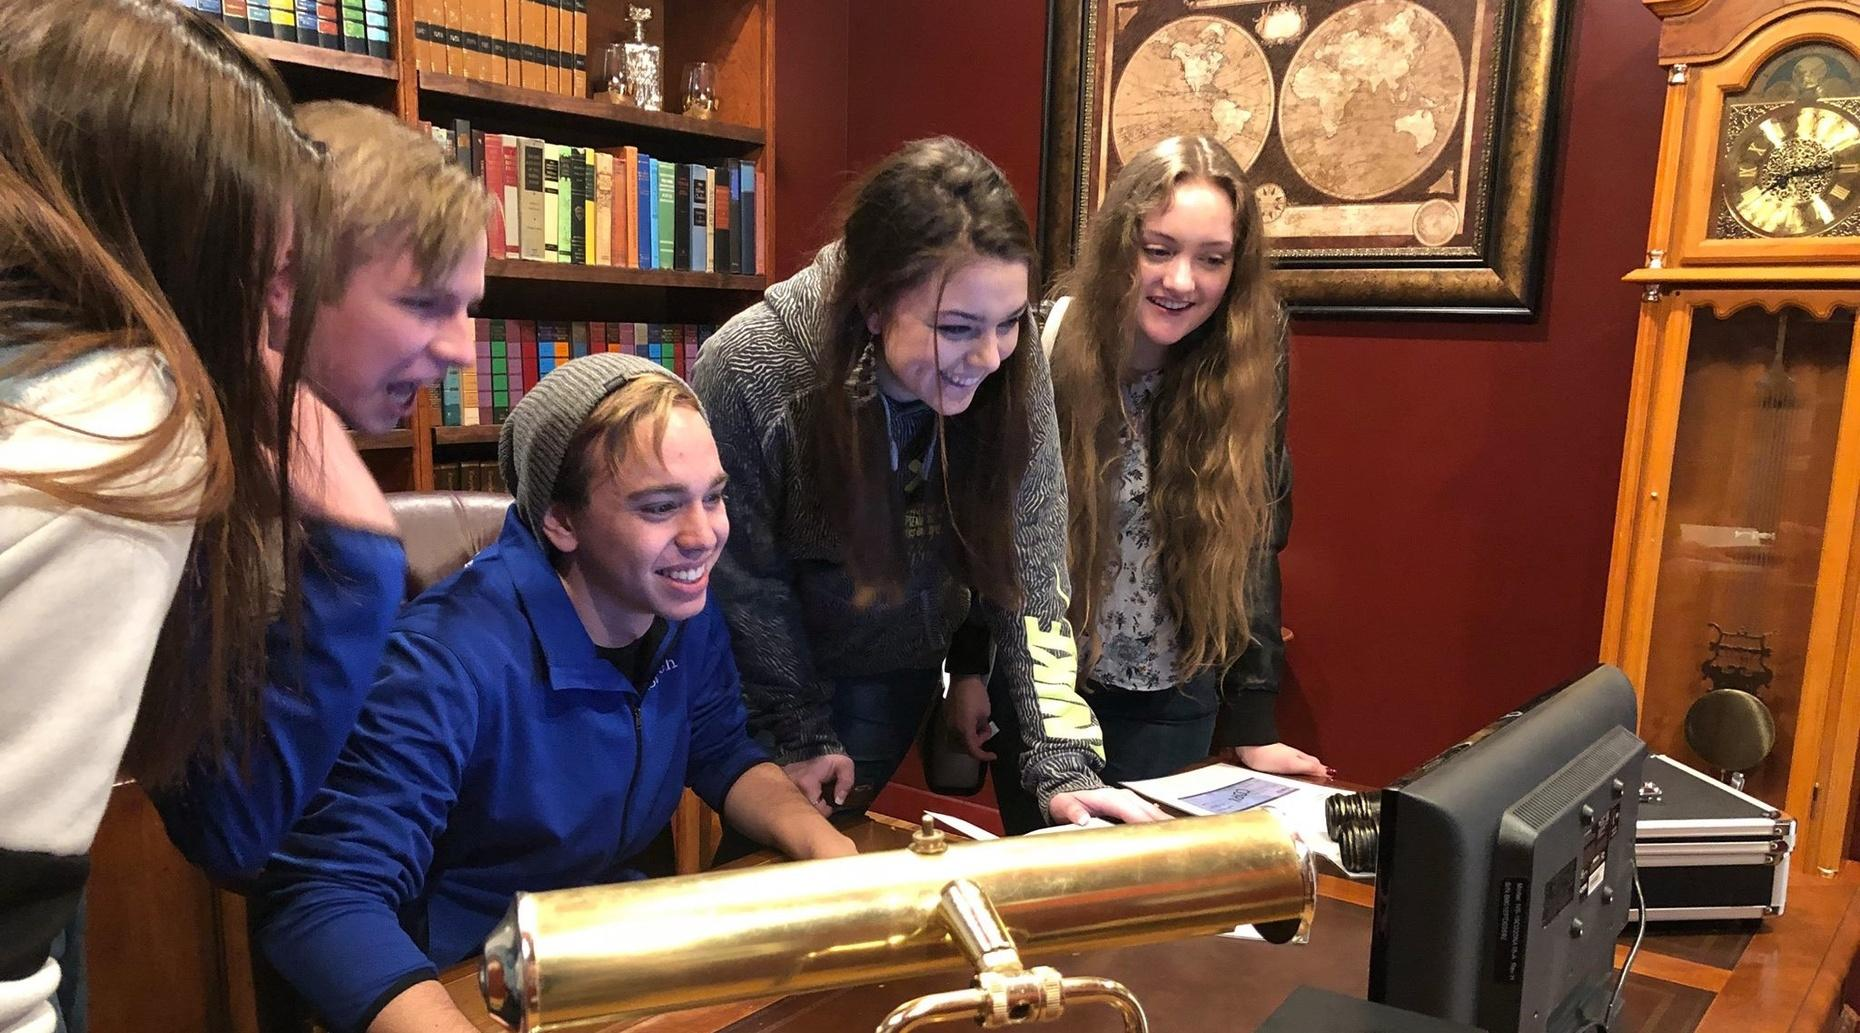 The Great Fairy Escape Room in West Jordan